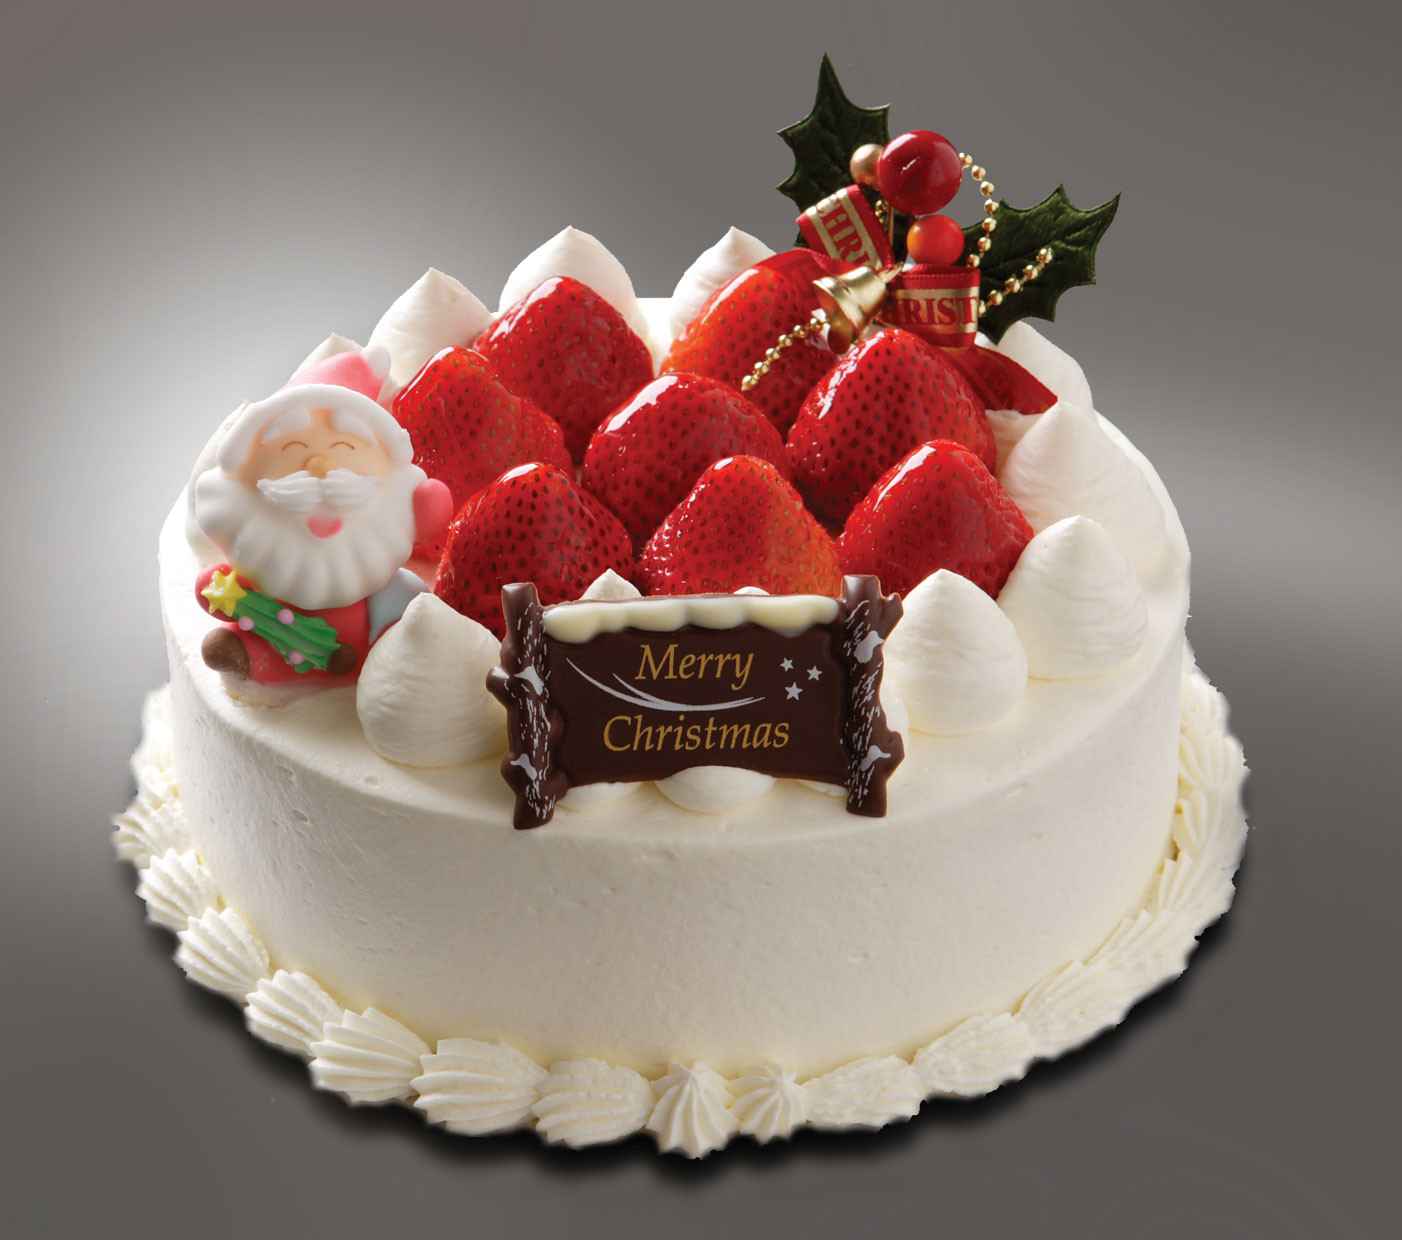 Strawberry Christmas Cake  Holiday Traditions in Japan